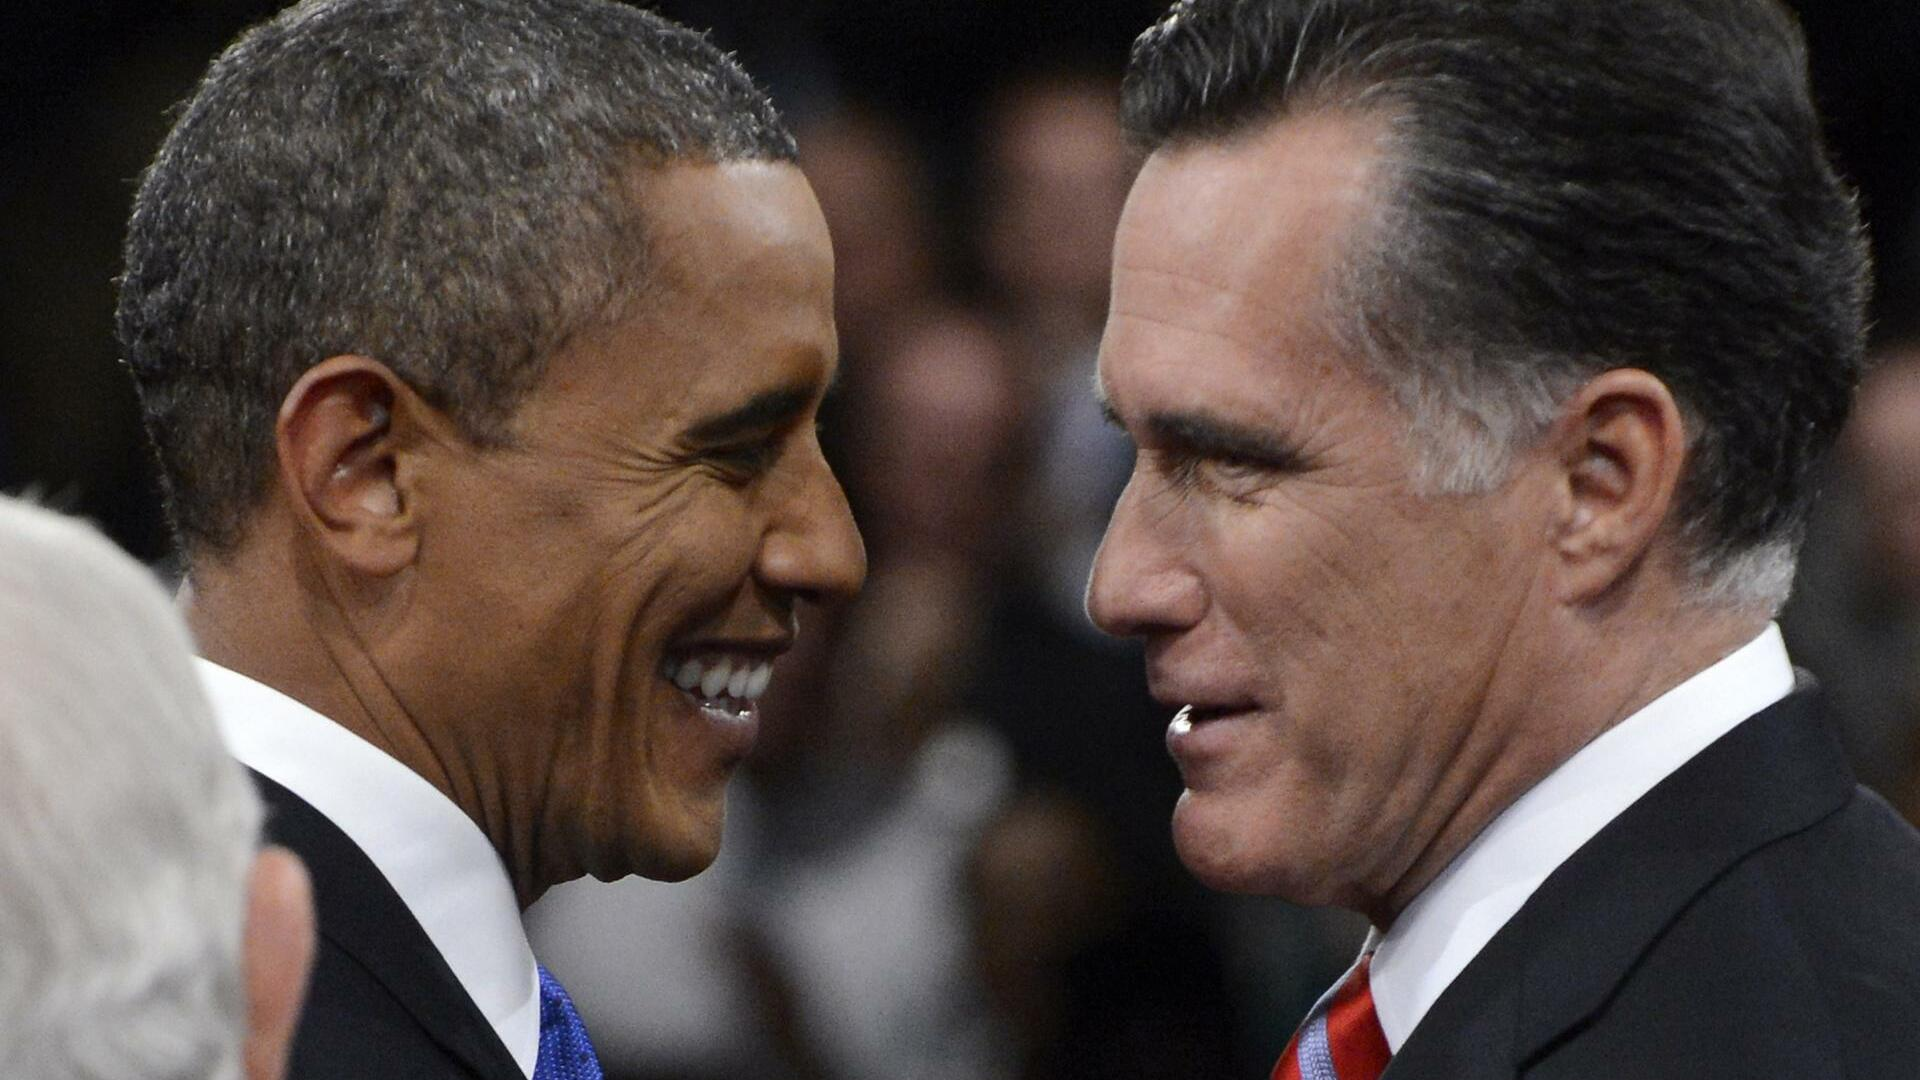 Romney vs Obama: Twitter-Protokoll  zum TV-Duell